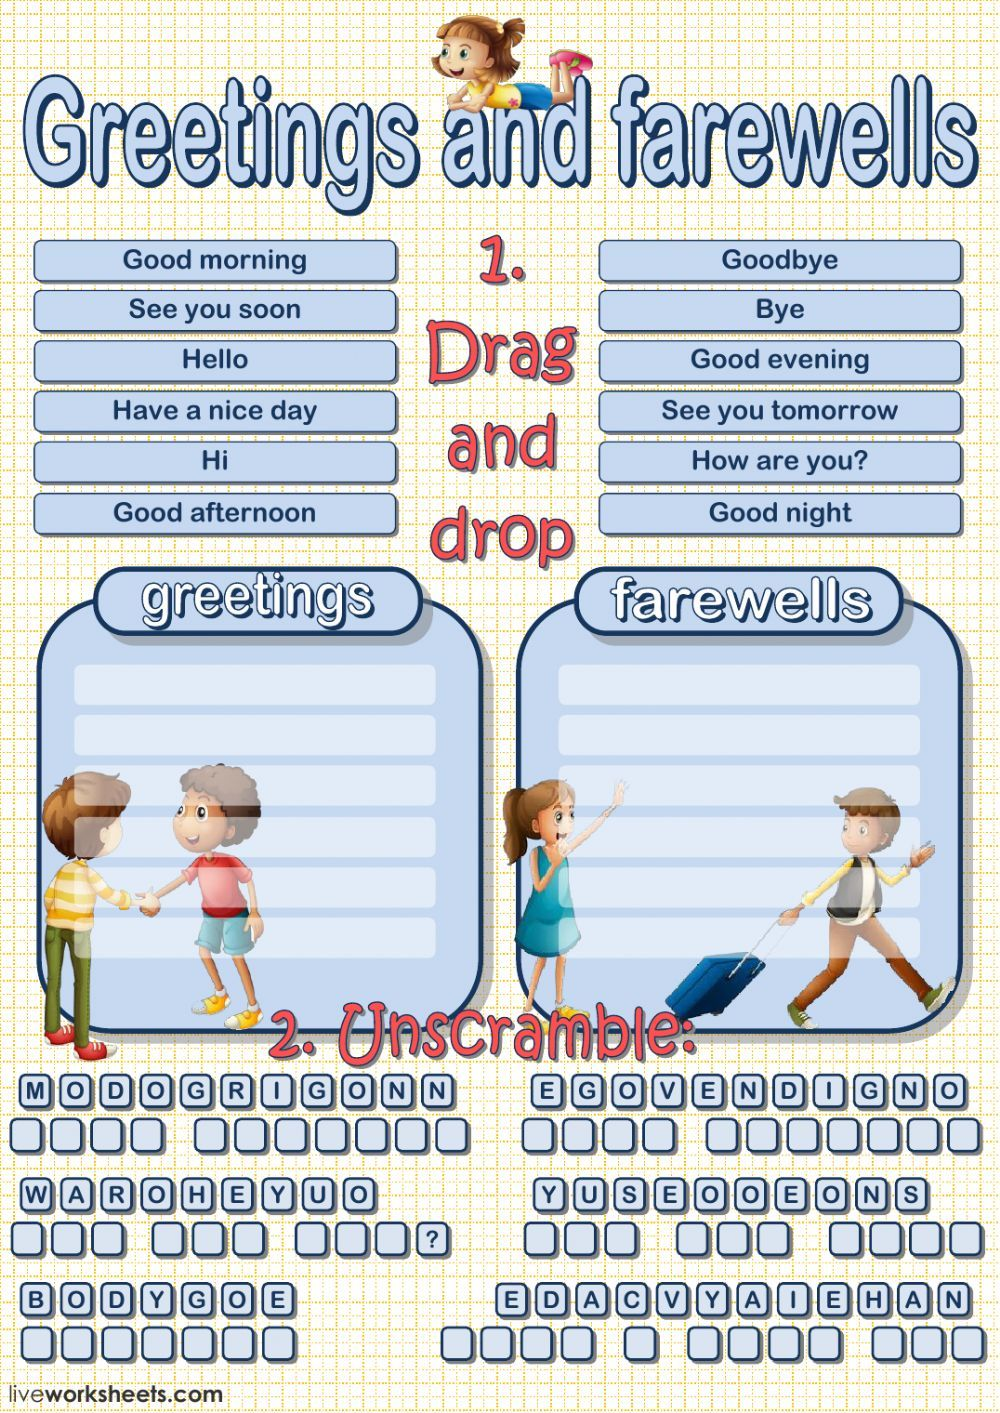 Greetings And Farewells Interactive And Downloadable Worksheet You Can Do The Exe Learning English For Kids English For Beginners English As A Second Language